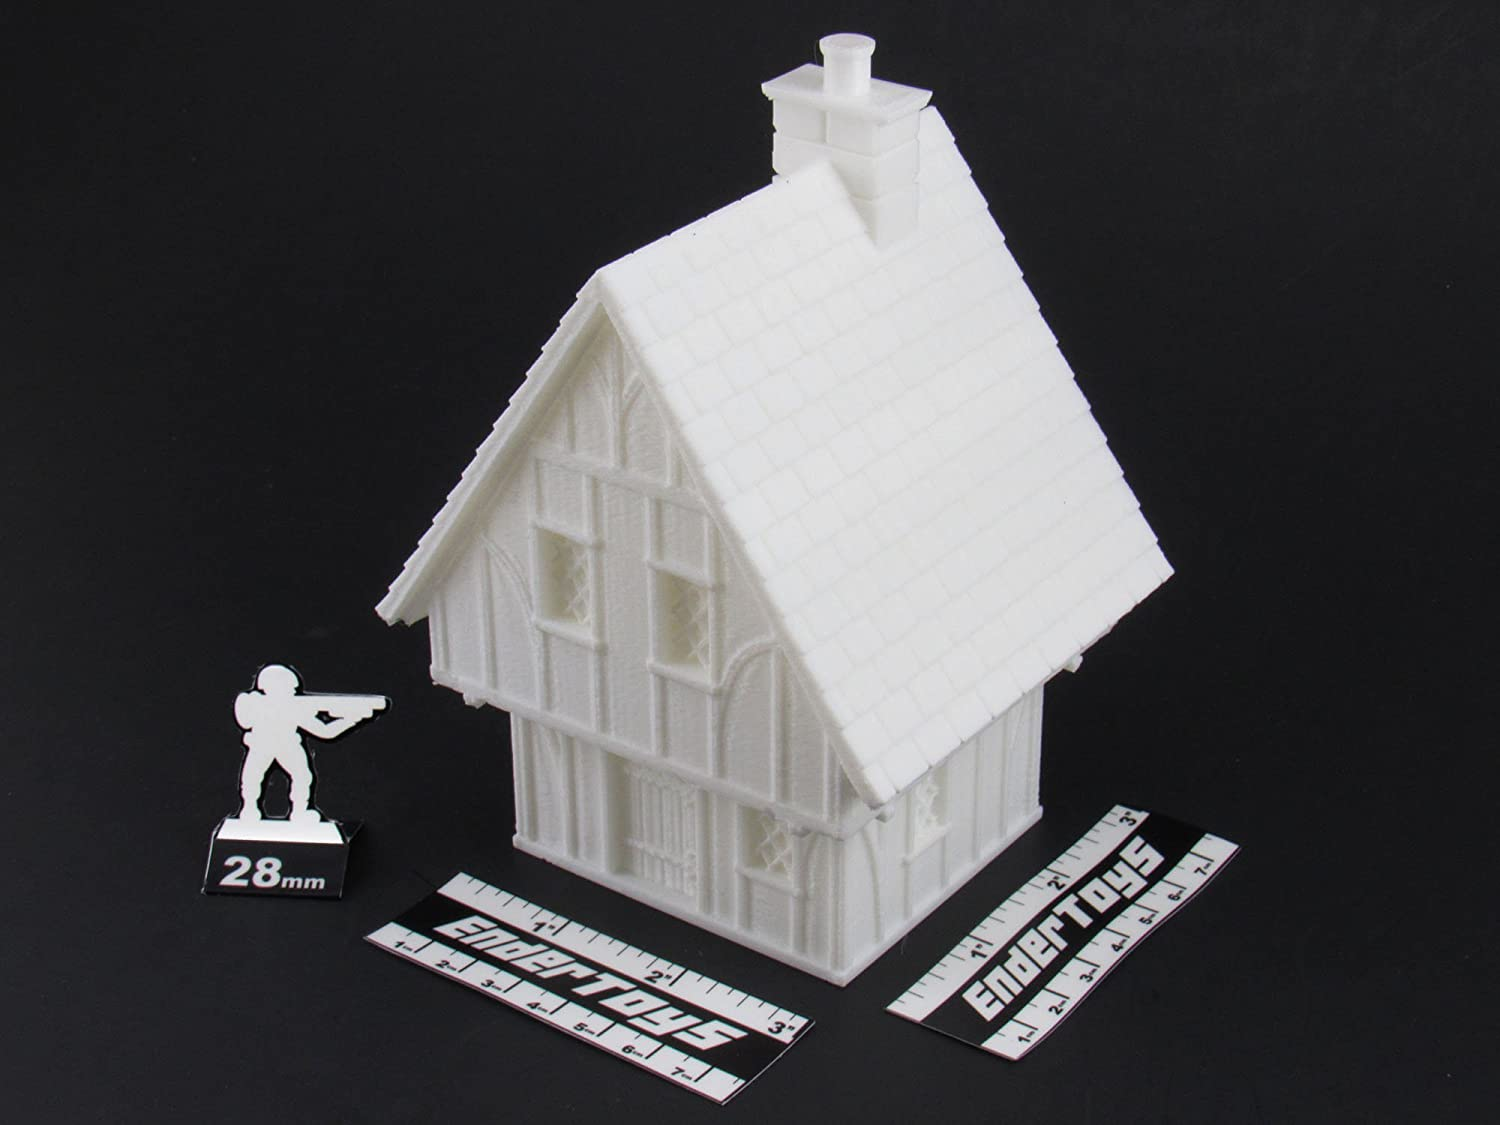 EnderToys Terrain Scenery for Tabletop 28mm Miniatures Wargame 3D Printed and Paintable Cottage Bundle